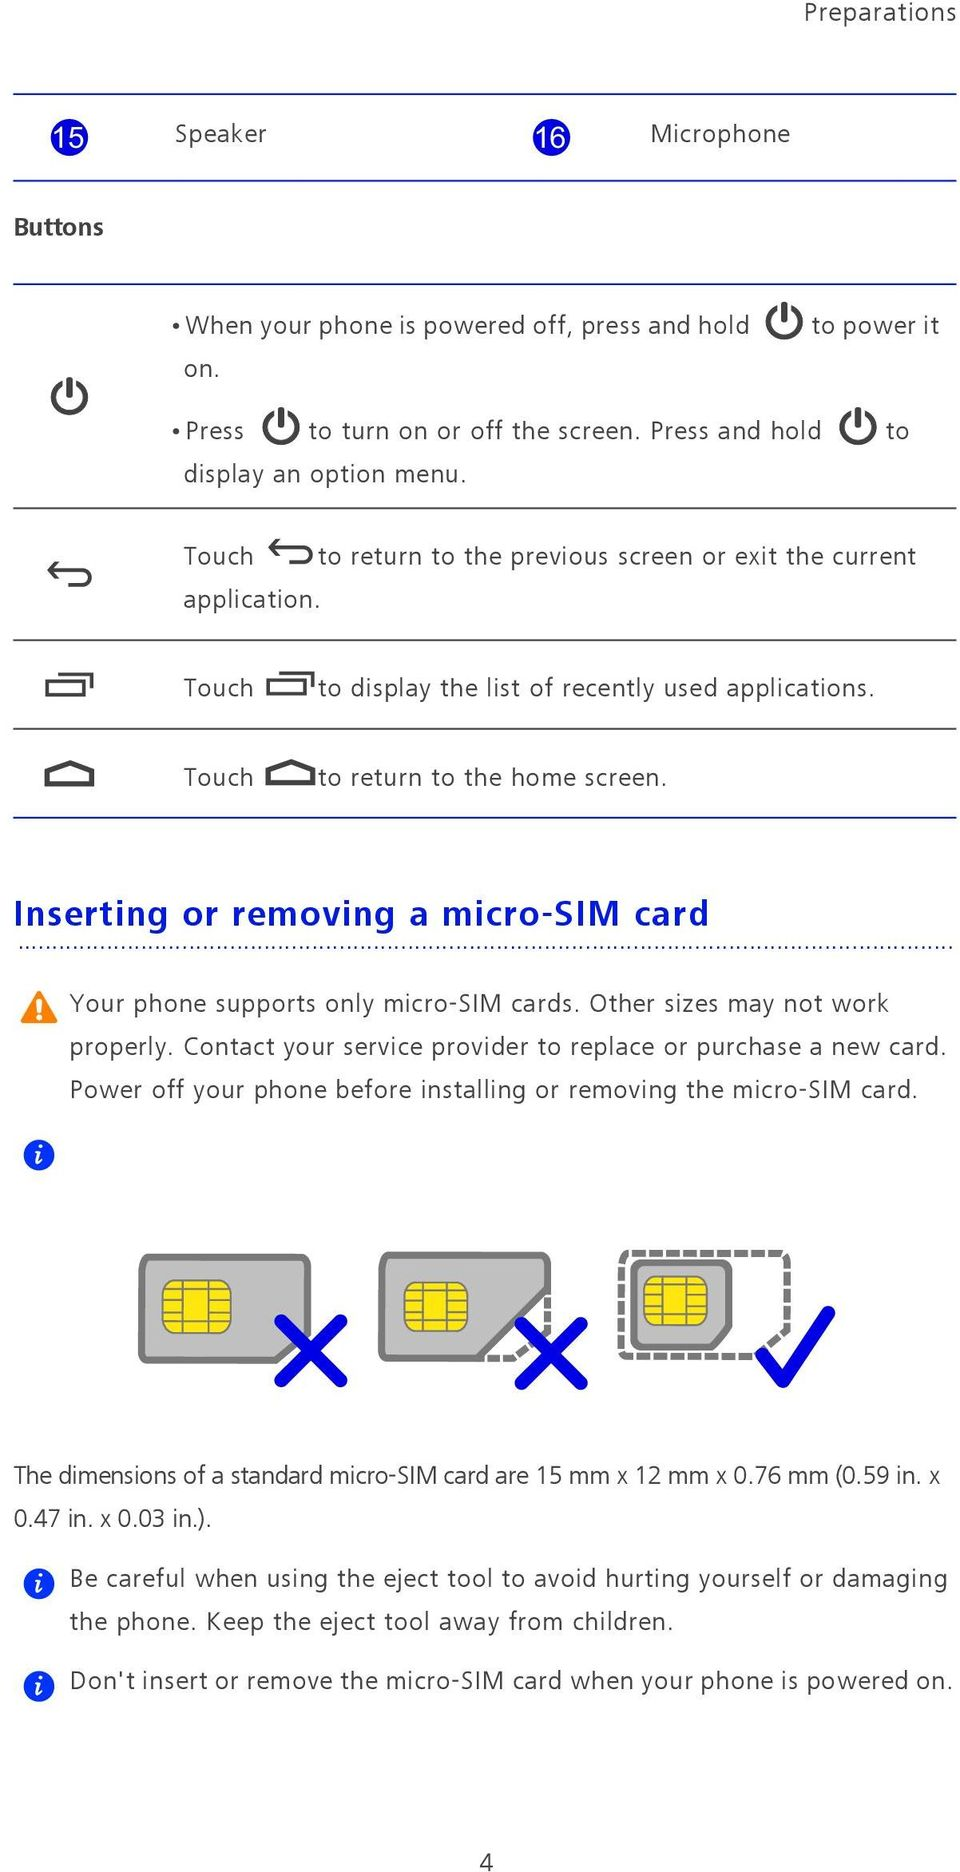 Inserting or removing a micro-sim card Your phone supports only micro-sim cards. Other sizes may not work properly. Contact your service provider to replace or purchase a new card.